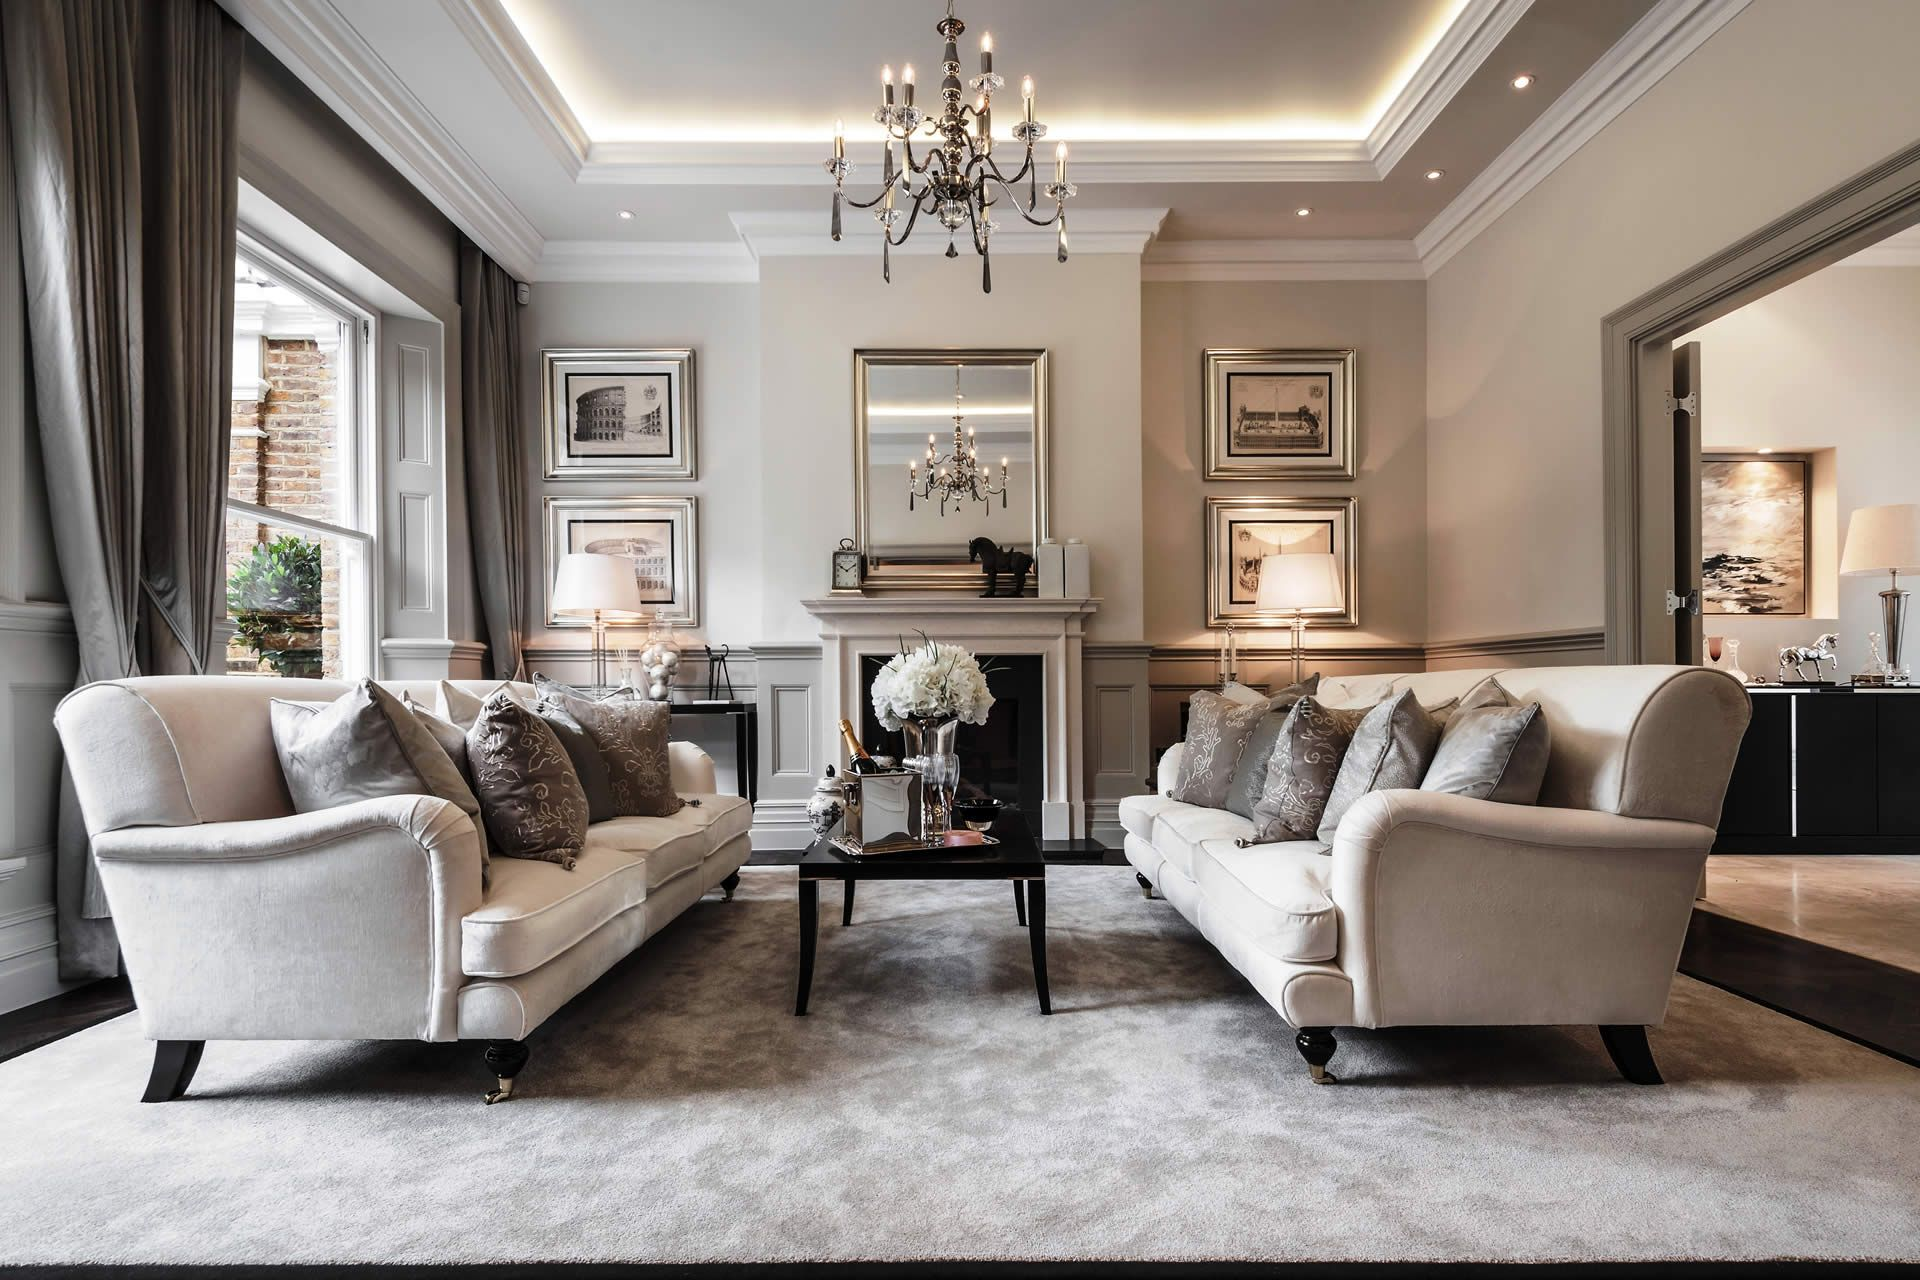 show living room designs. Cleeves House  traditional living room london Alexander James Interiors on we heart it visual bookmark Interior Design Show Houses Home